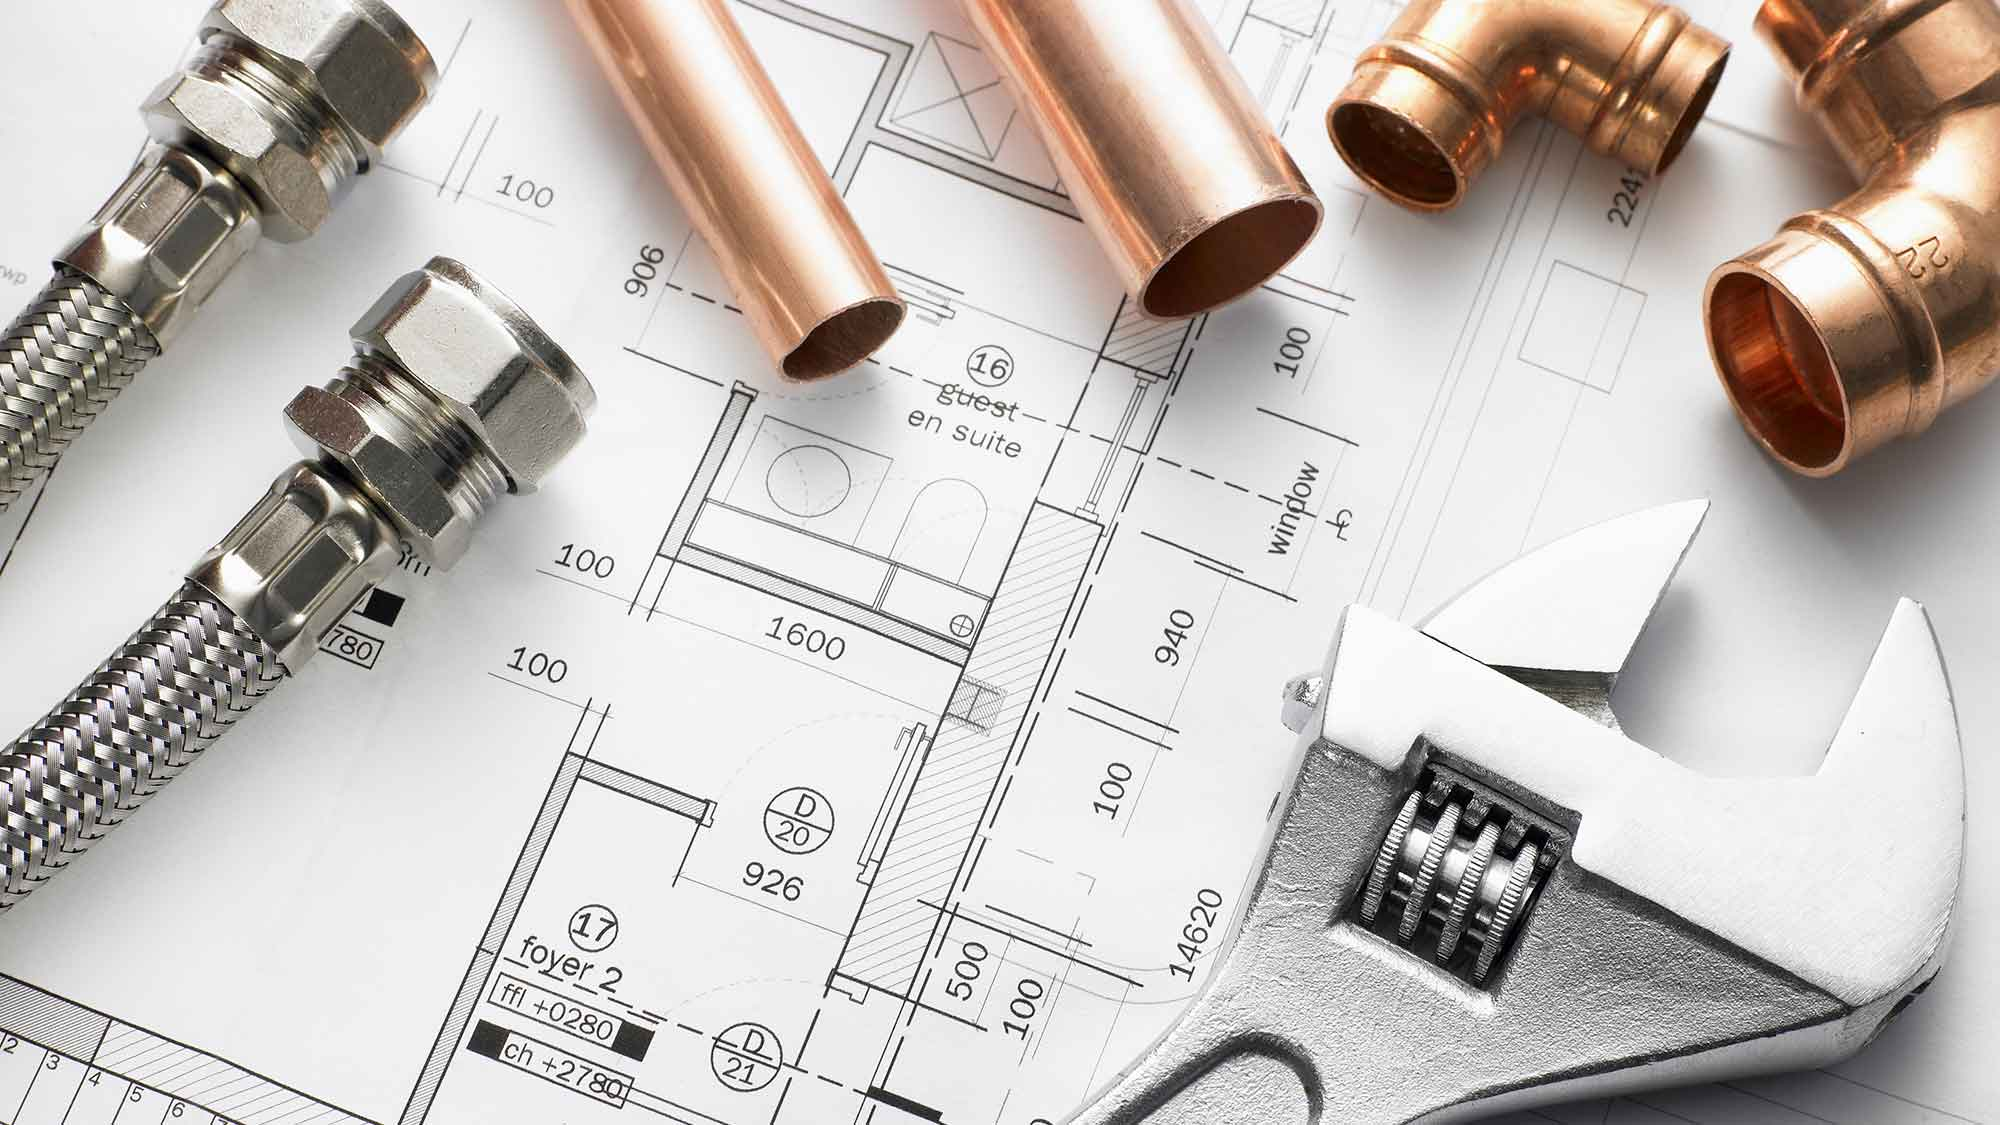 central heating servicing essex maintenance leigh on sea drawings